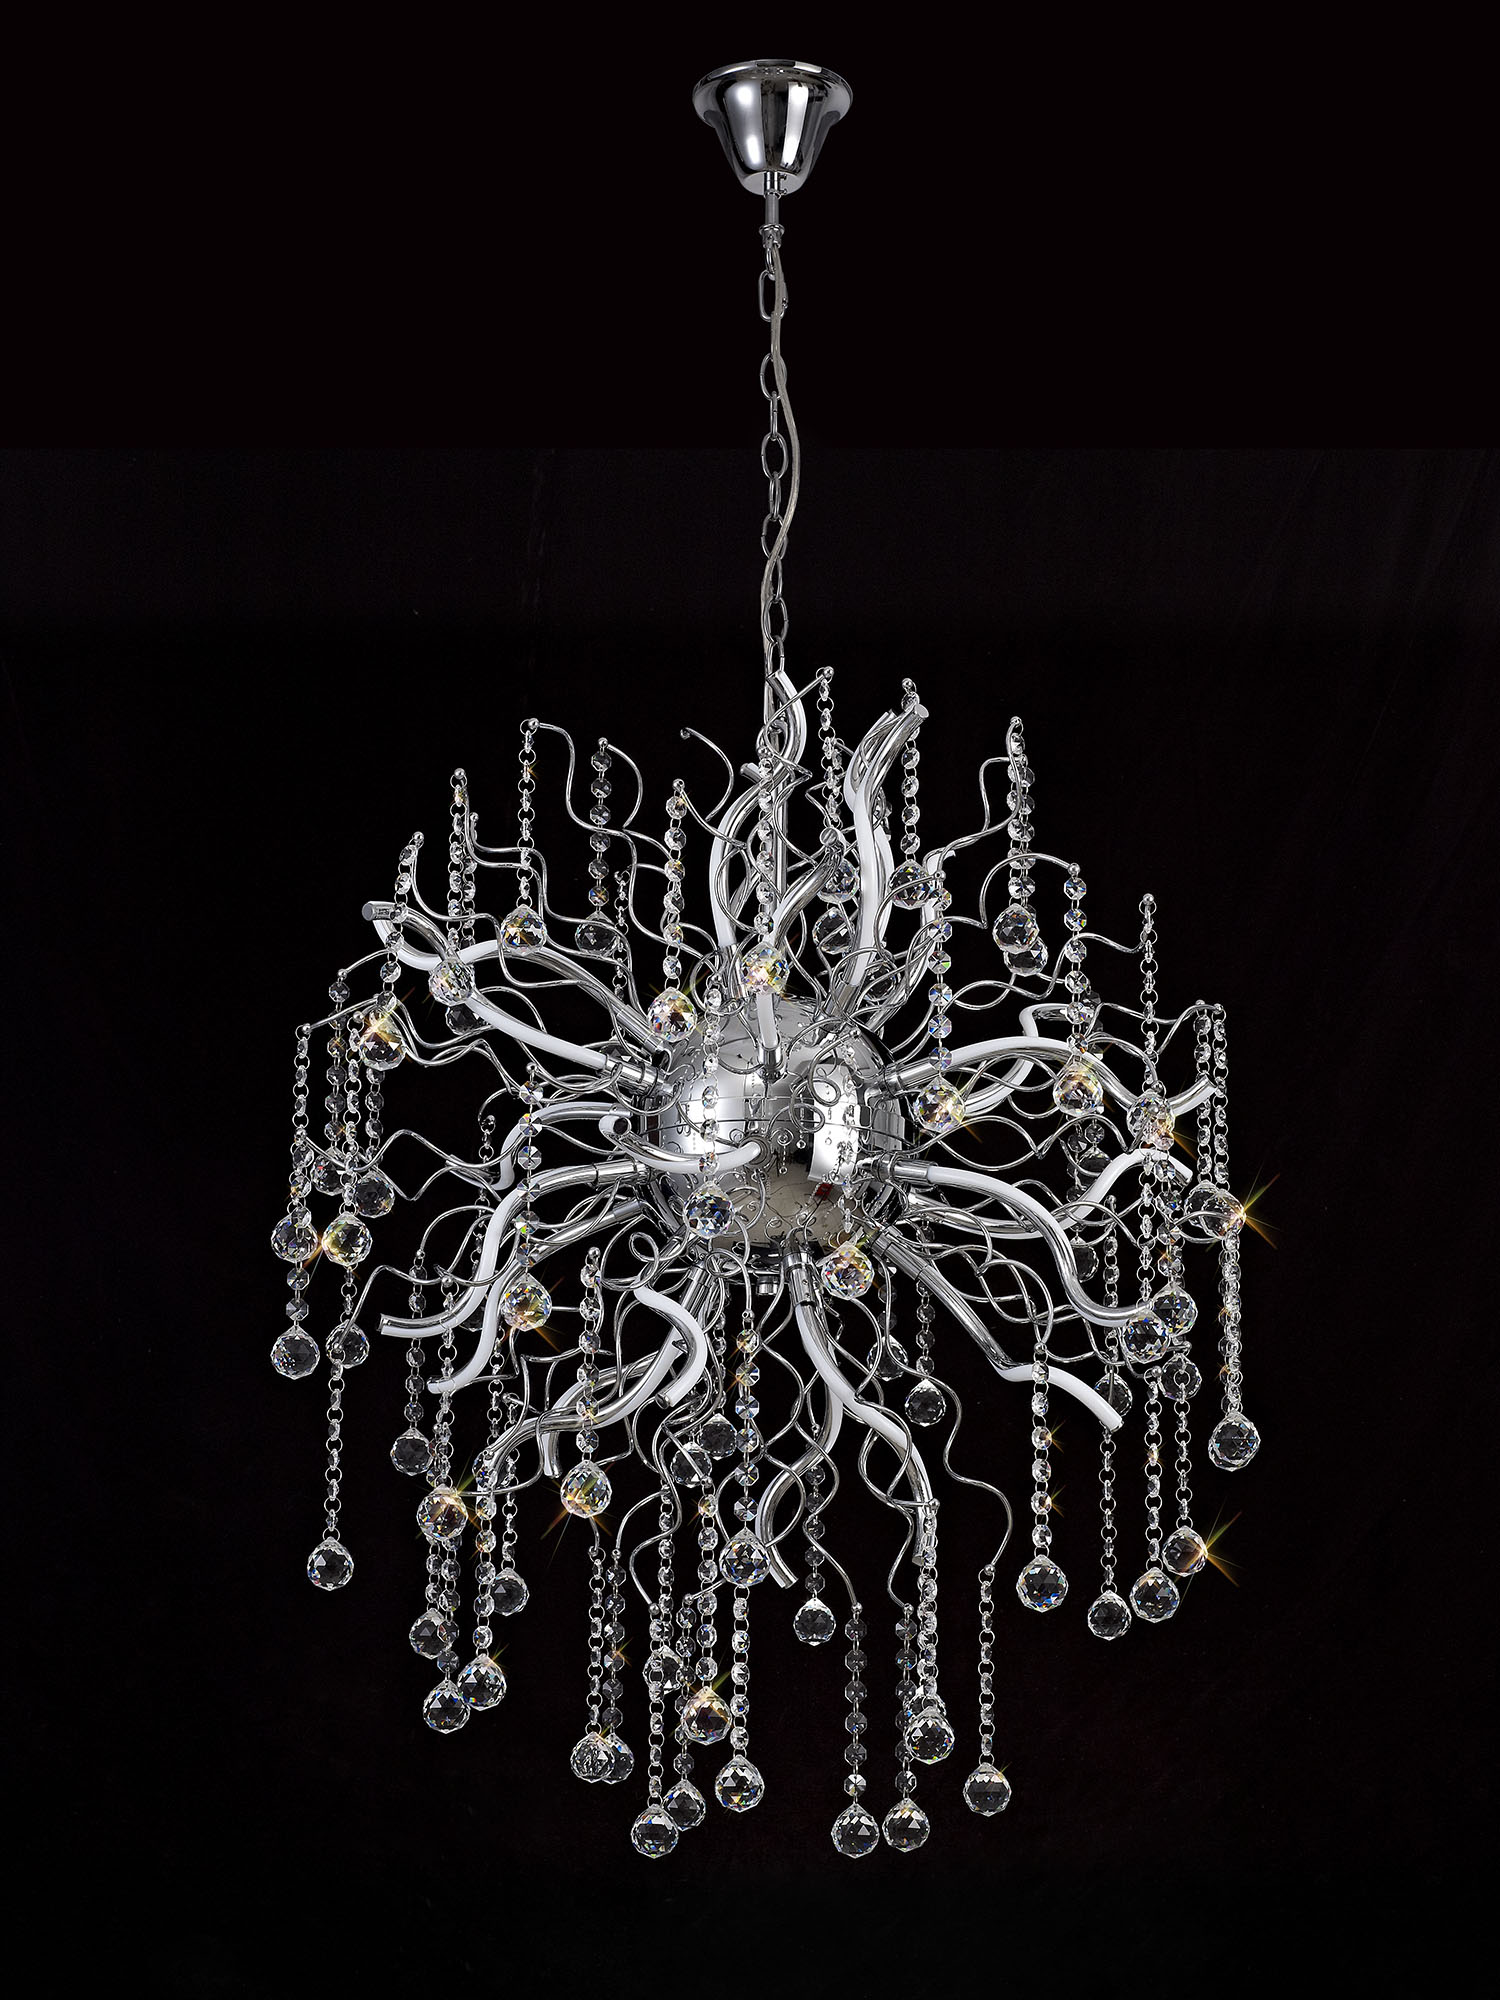 Dimmable Pendant, 24 x 1.7W LED, 3000K, 3150lm, Polished Chrome, 3yrs Warranty